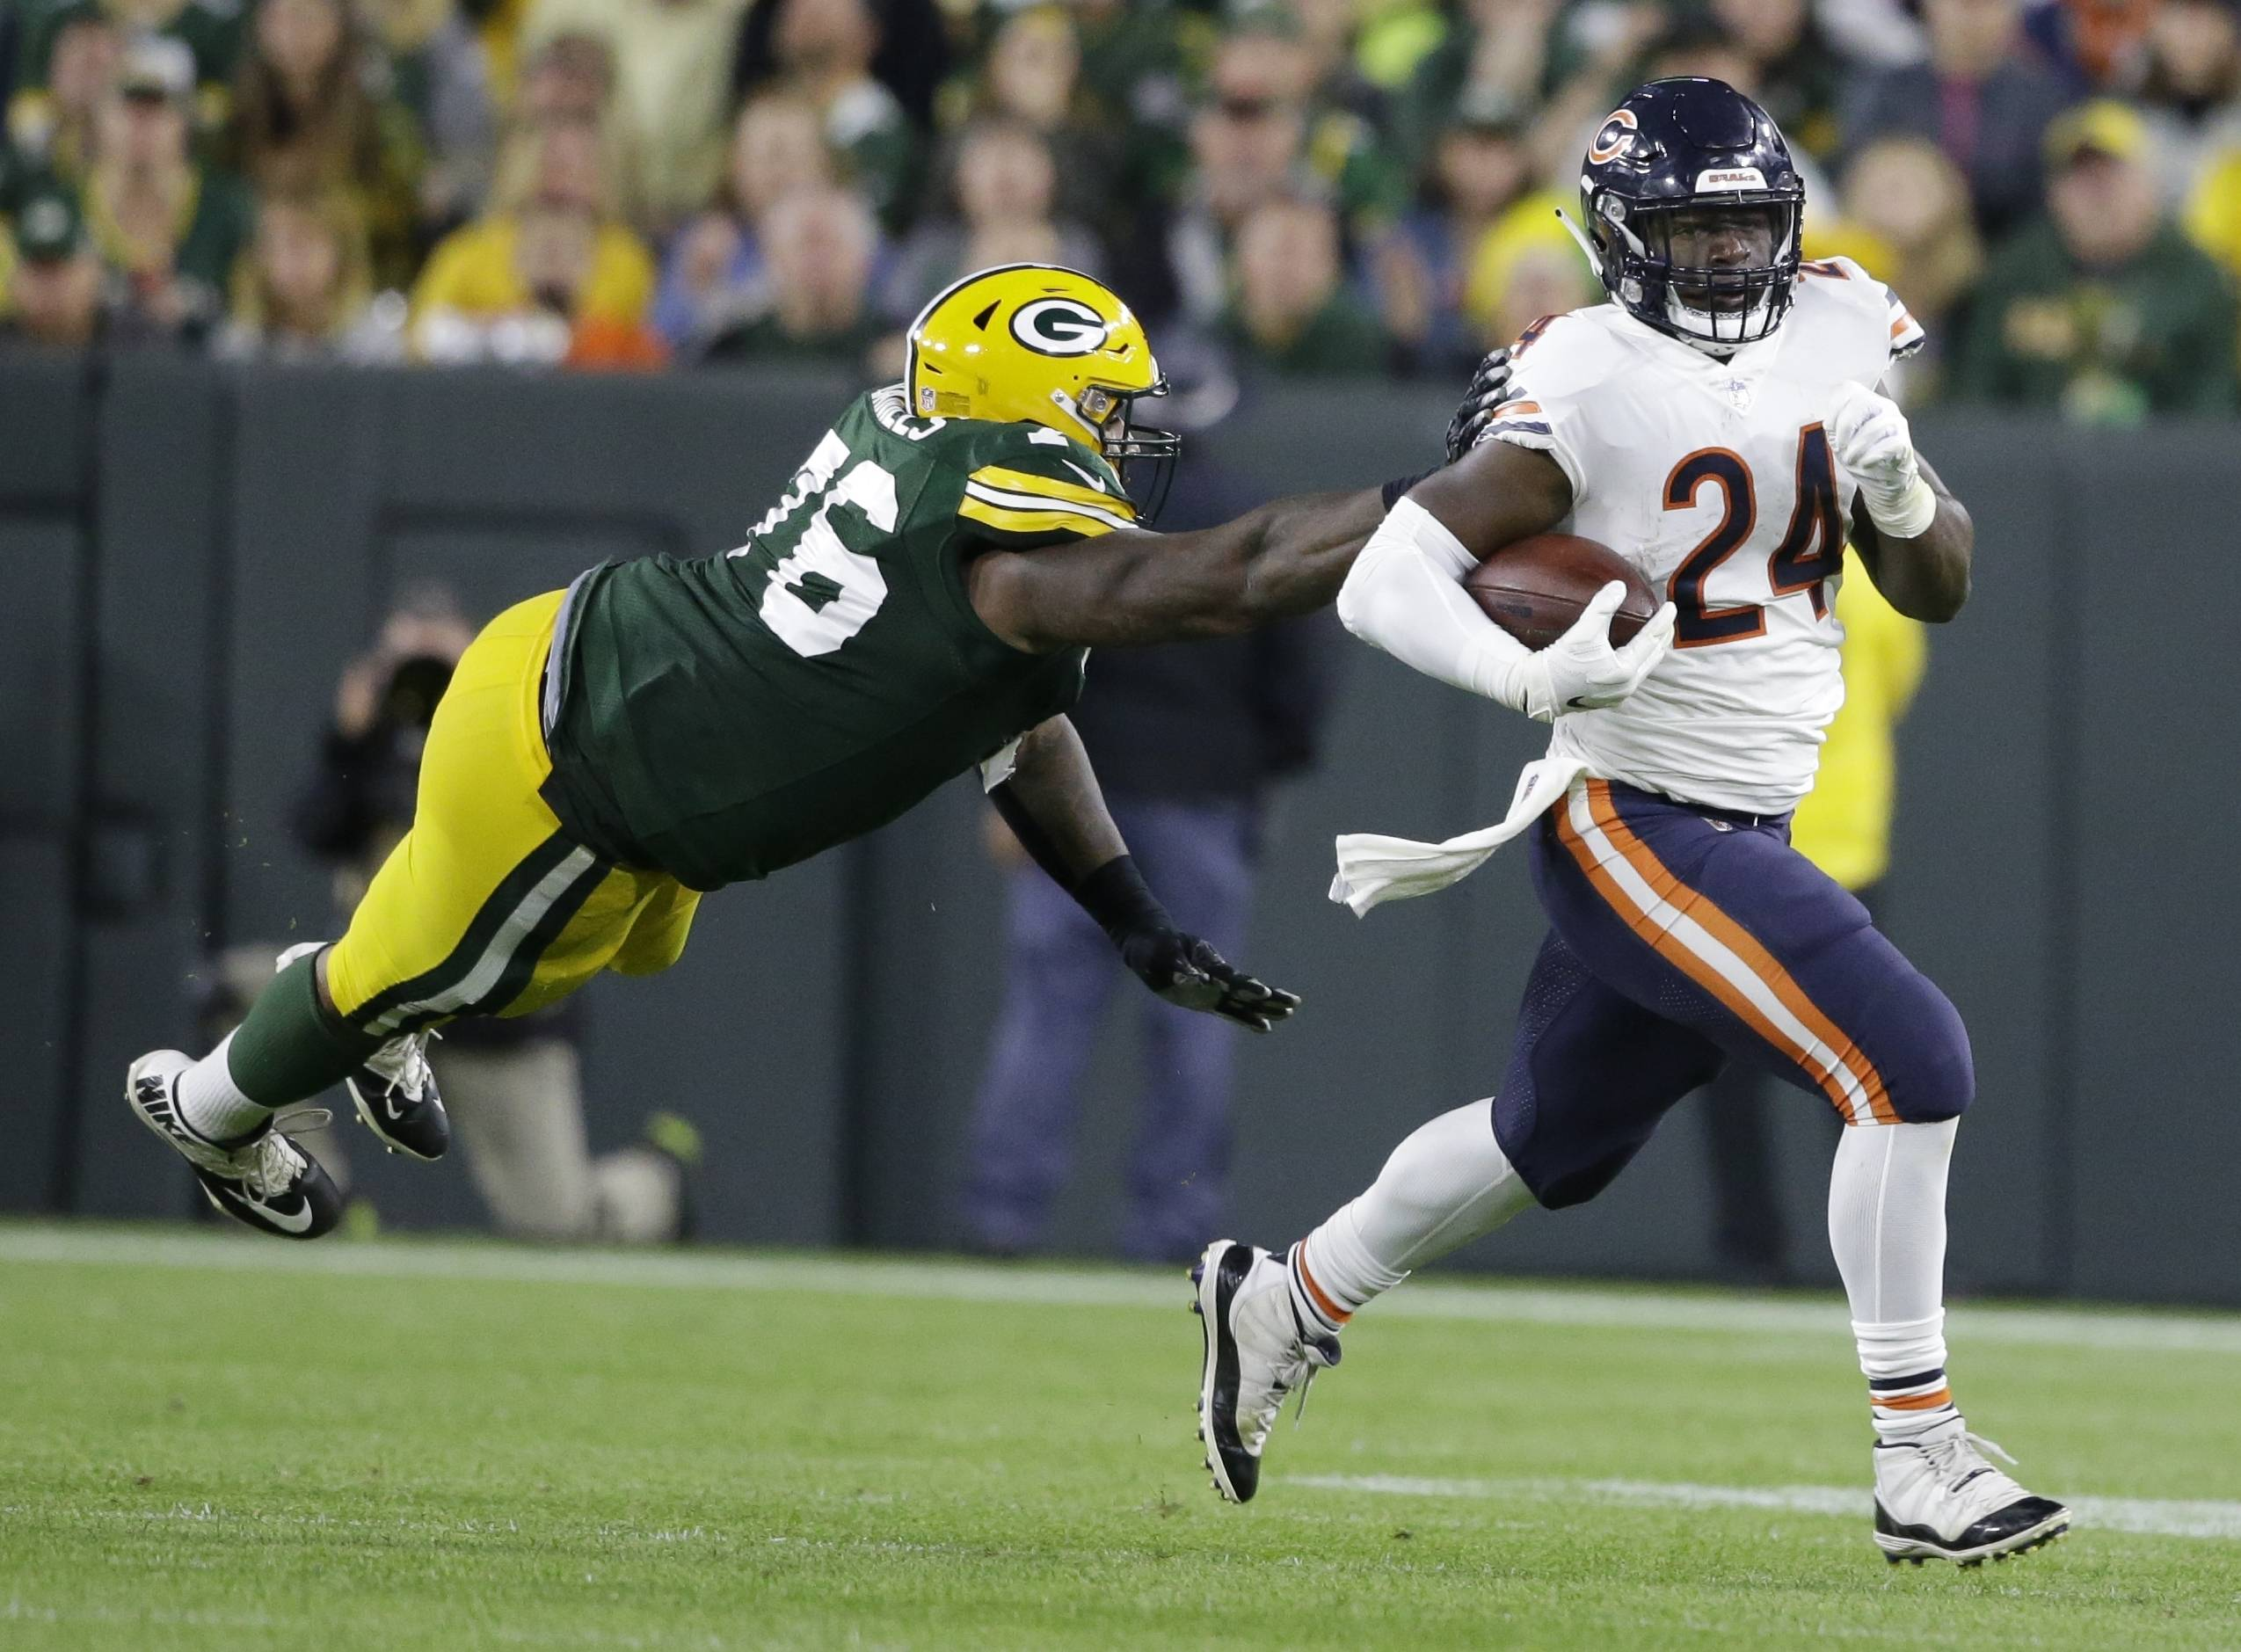 Chicago Bears' Jordan Howard runs past Green Bay Packers' Mike Daniels during the second half of an NFL football game Sunday, Sept. 9, 2018, in Green Bay, Wis.